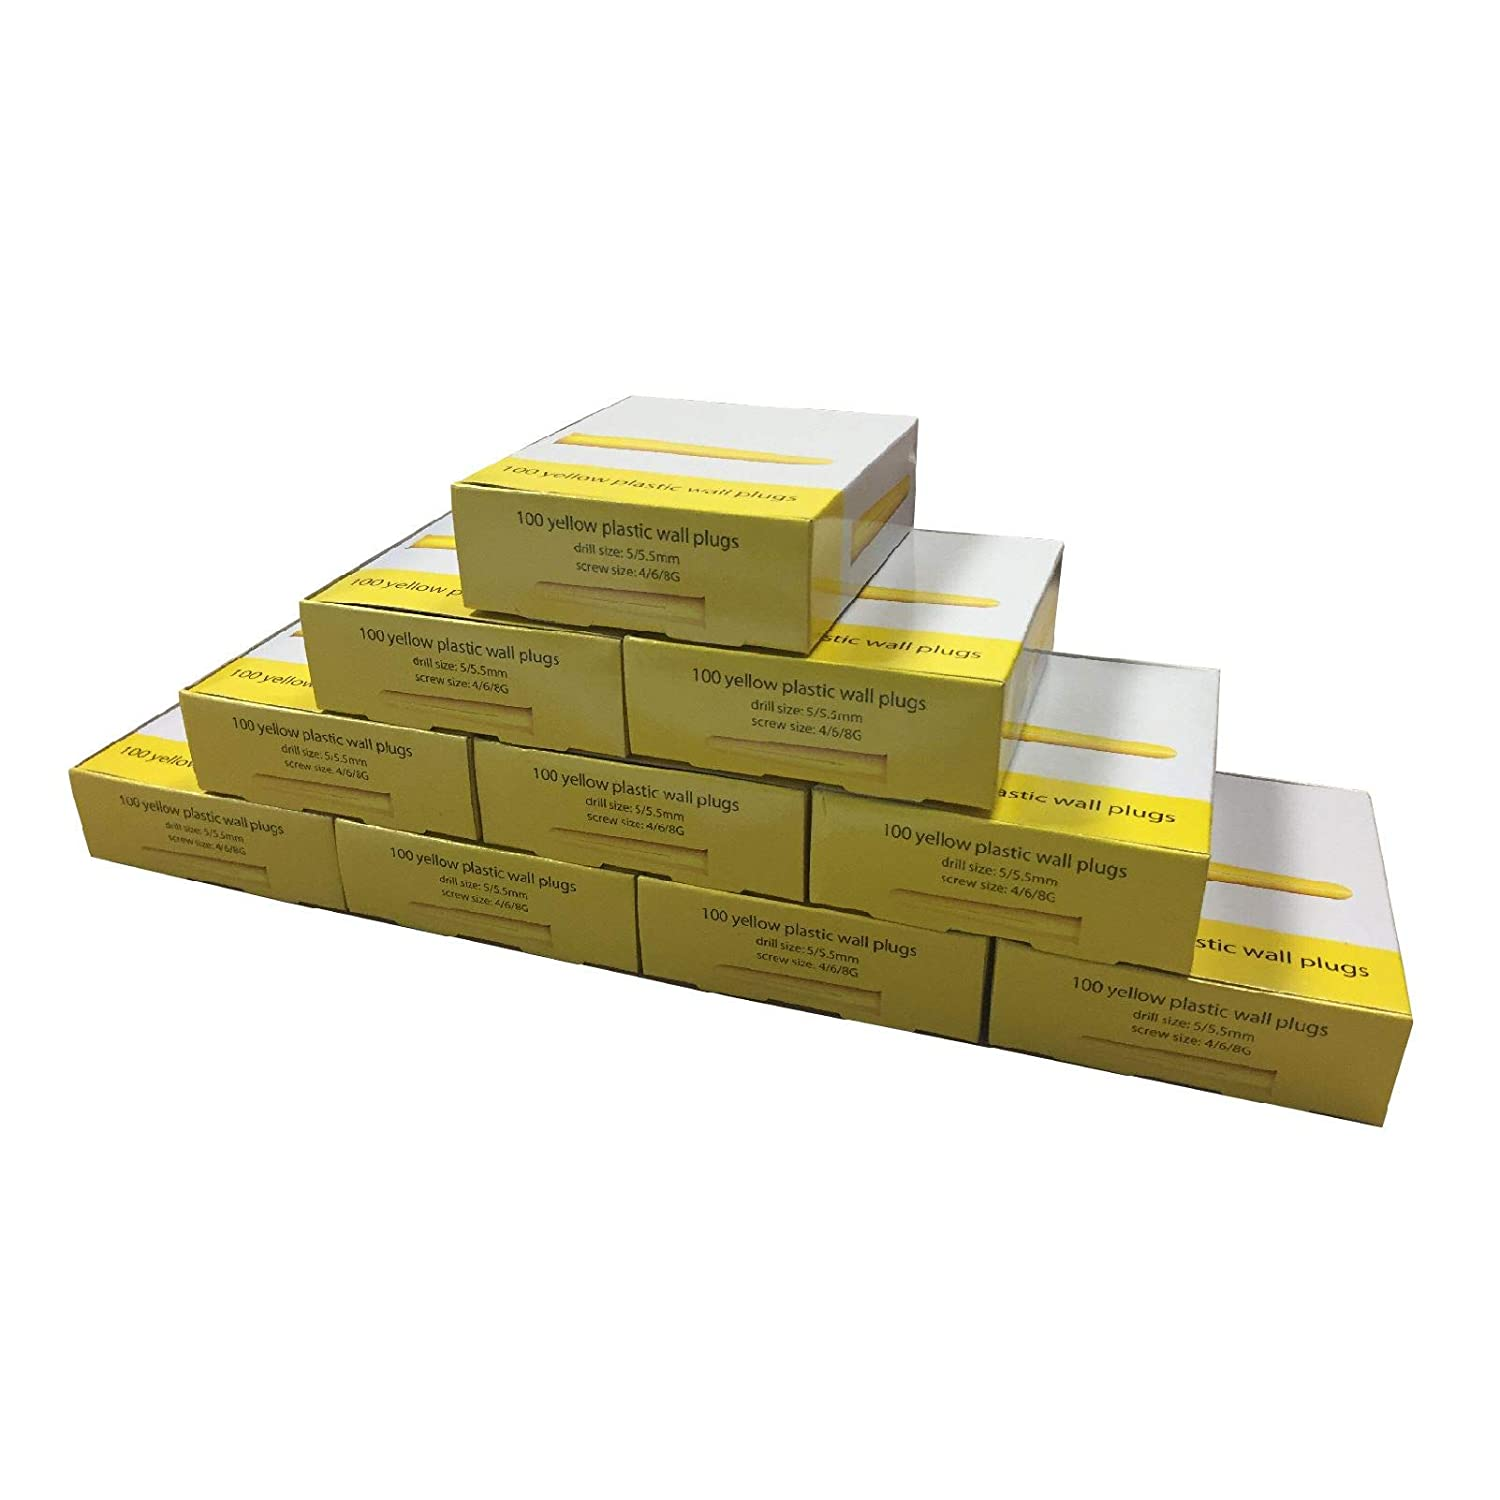 1000 x Yellow Wall Raw Plugs Trade Pack Expansion Fixings 5mm Rawl Plugs